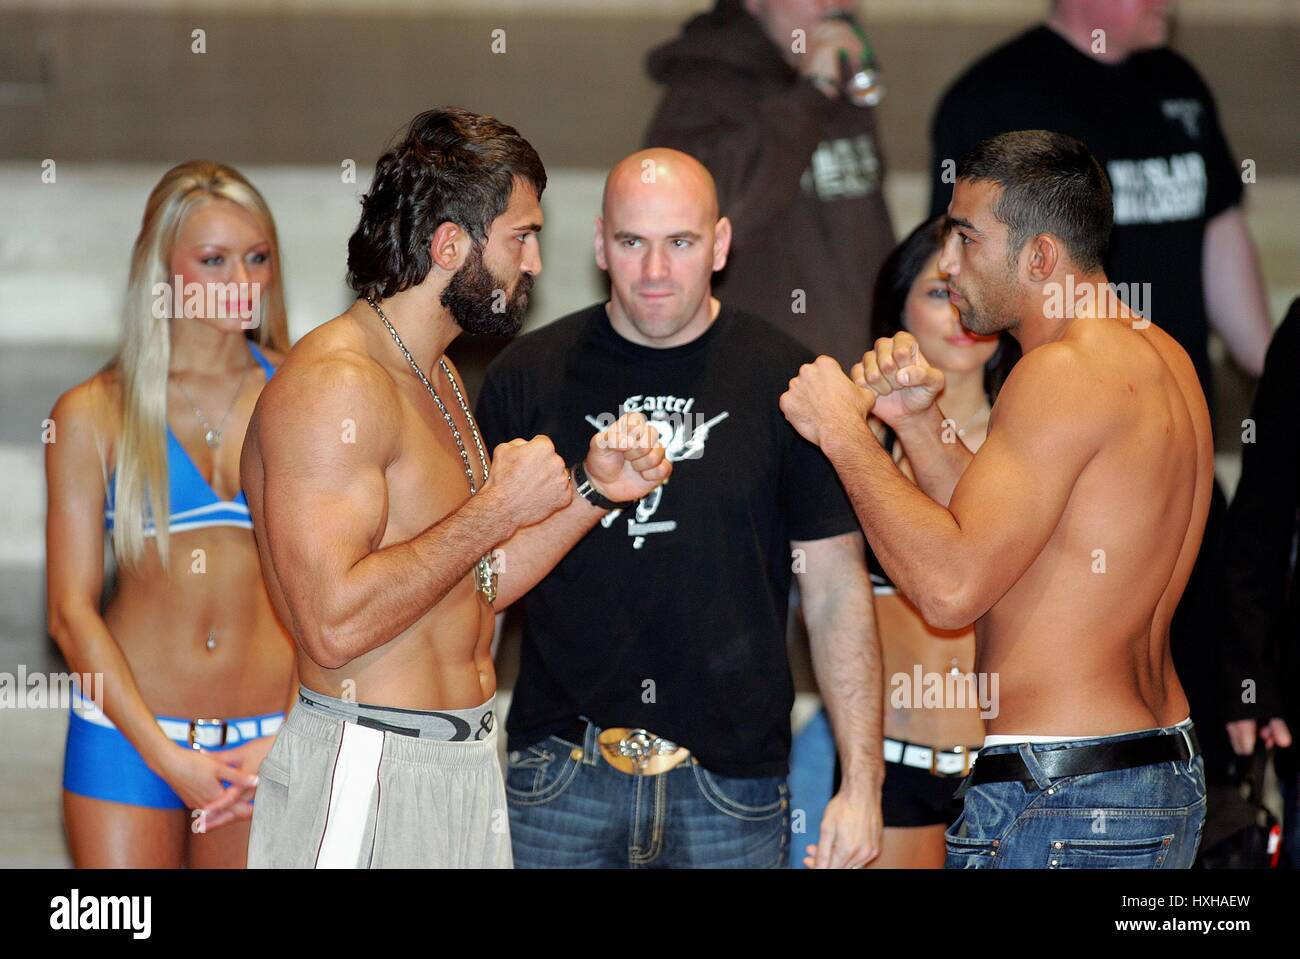 ANDREI ARLOVSKI & FENDERICO WE UFC HEAVY WEIGHT FIGHTERS MANCHESTER  ENGLAND 20 April 2007 - Stock Image